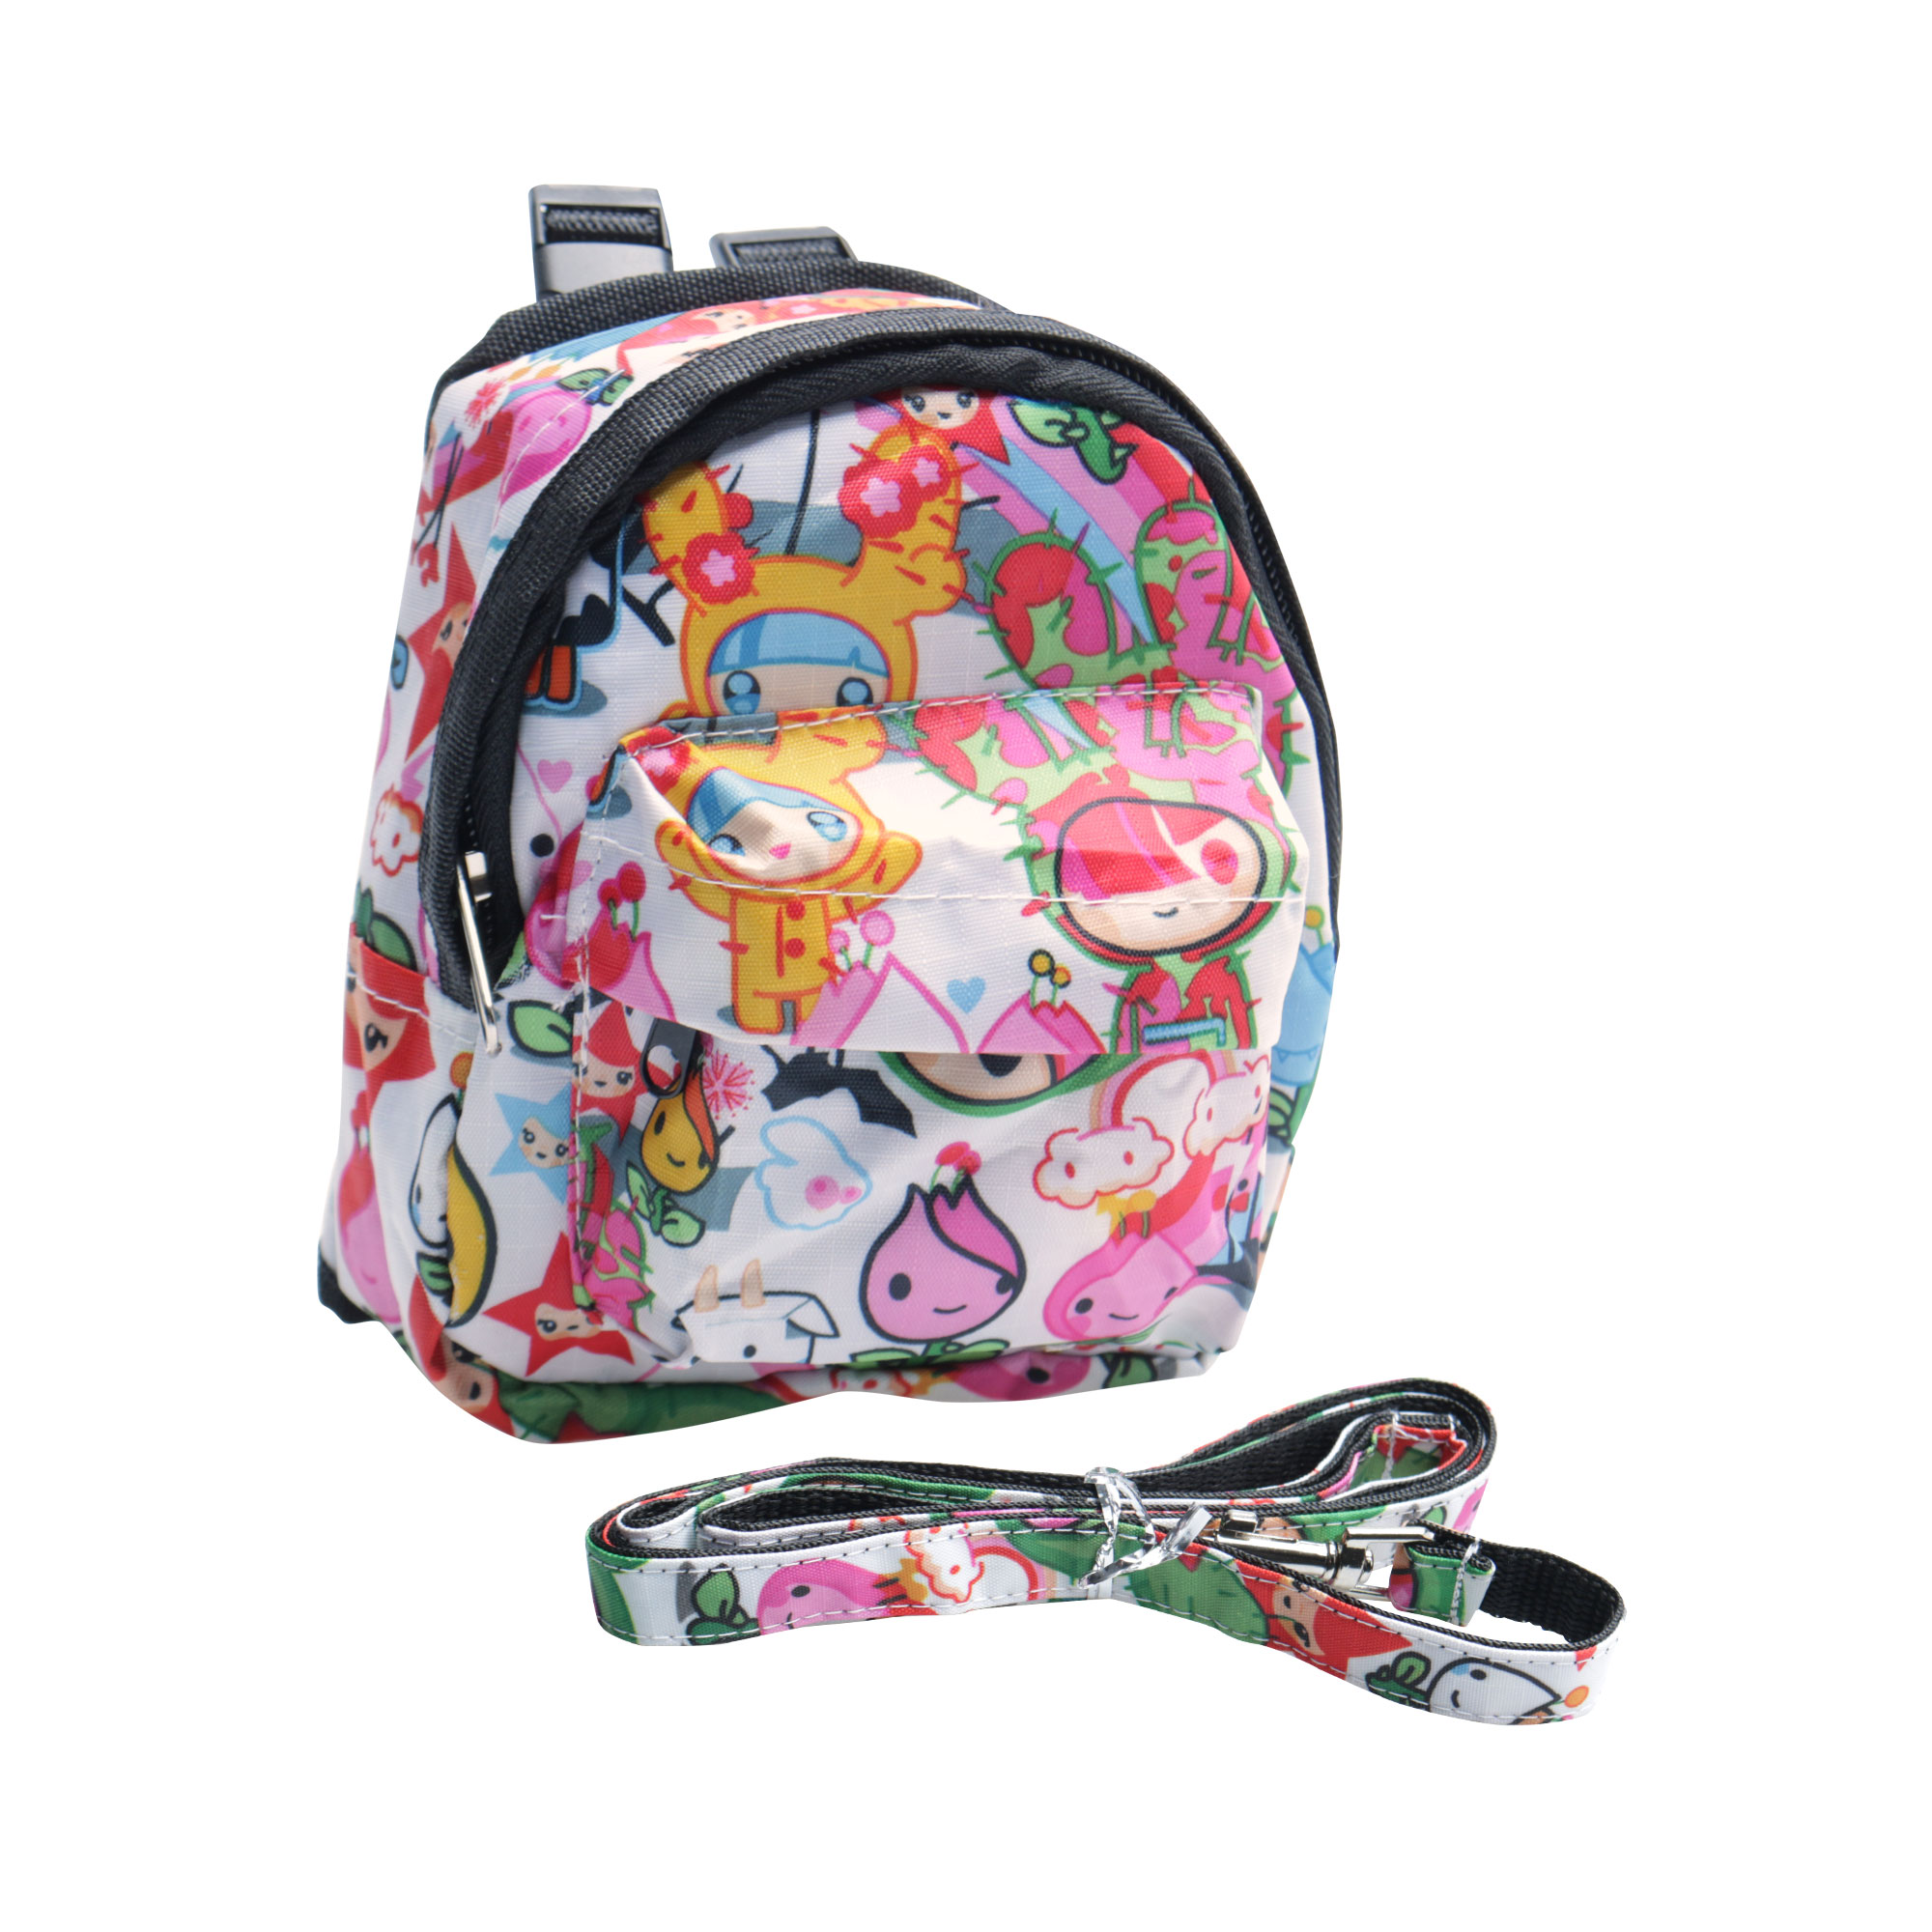 Dog Pet Backpack Cartoon Printed Carrier Bag Holder with Leash Rope for Outdoor Travel Camping #4, S